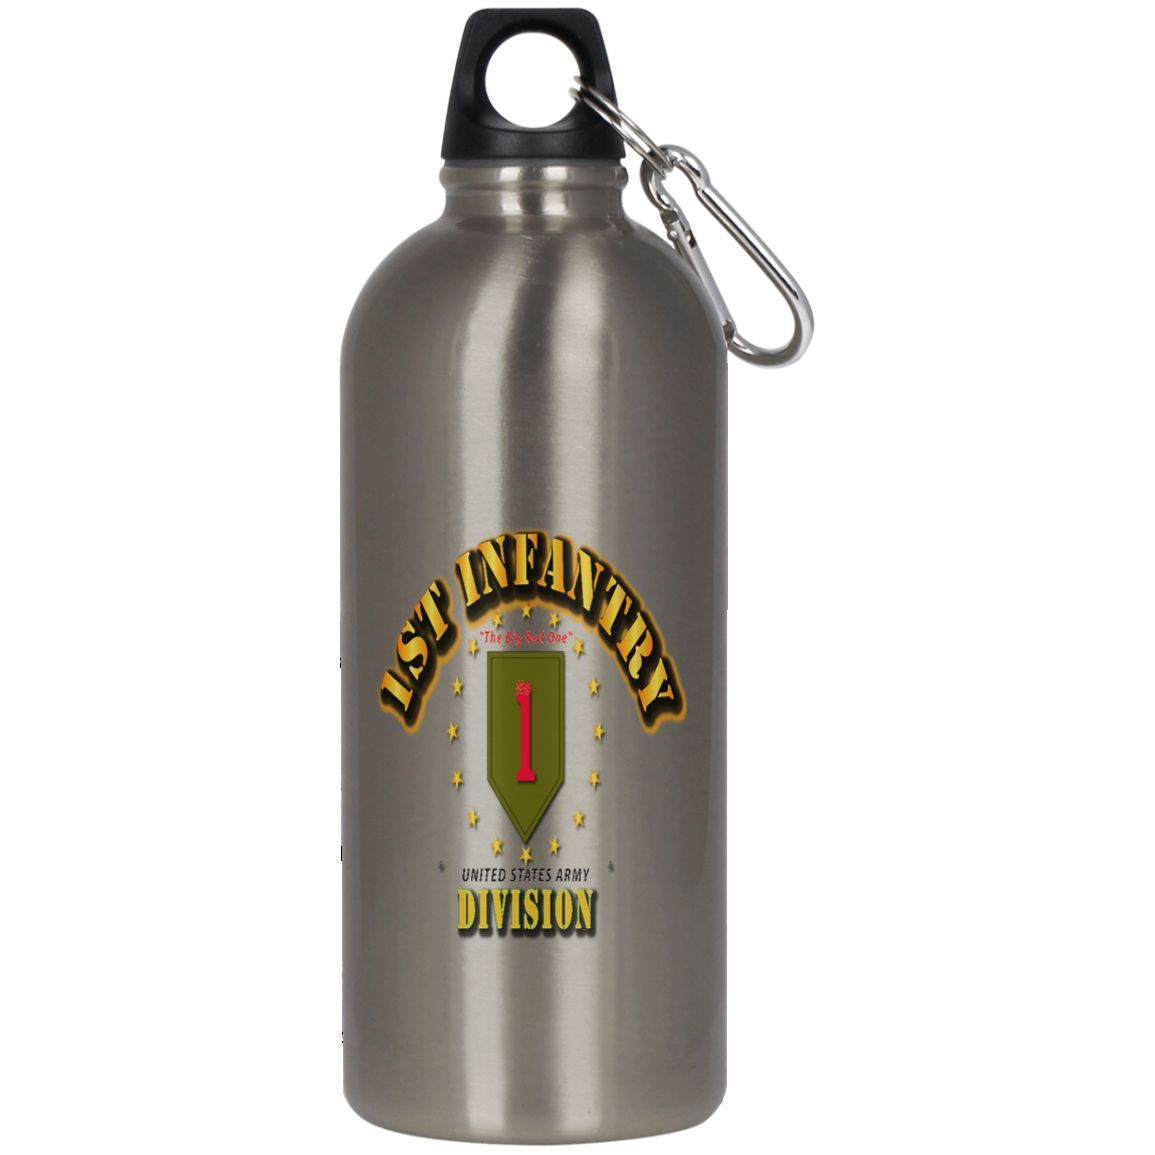 1ST INFANTRY DIVISION BIG RED ONE BY TWIX123844 23624 Stainless Steel Silver Water Bottle